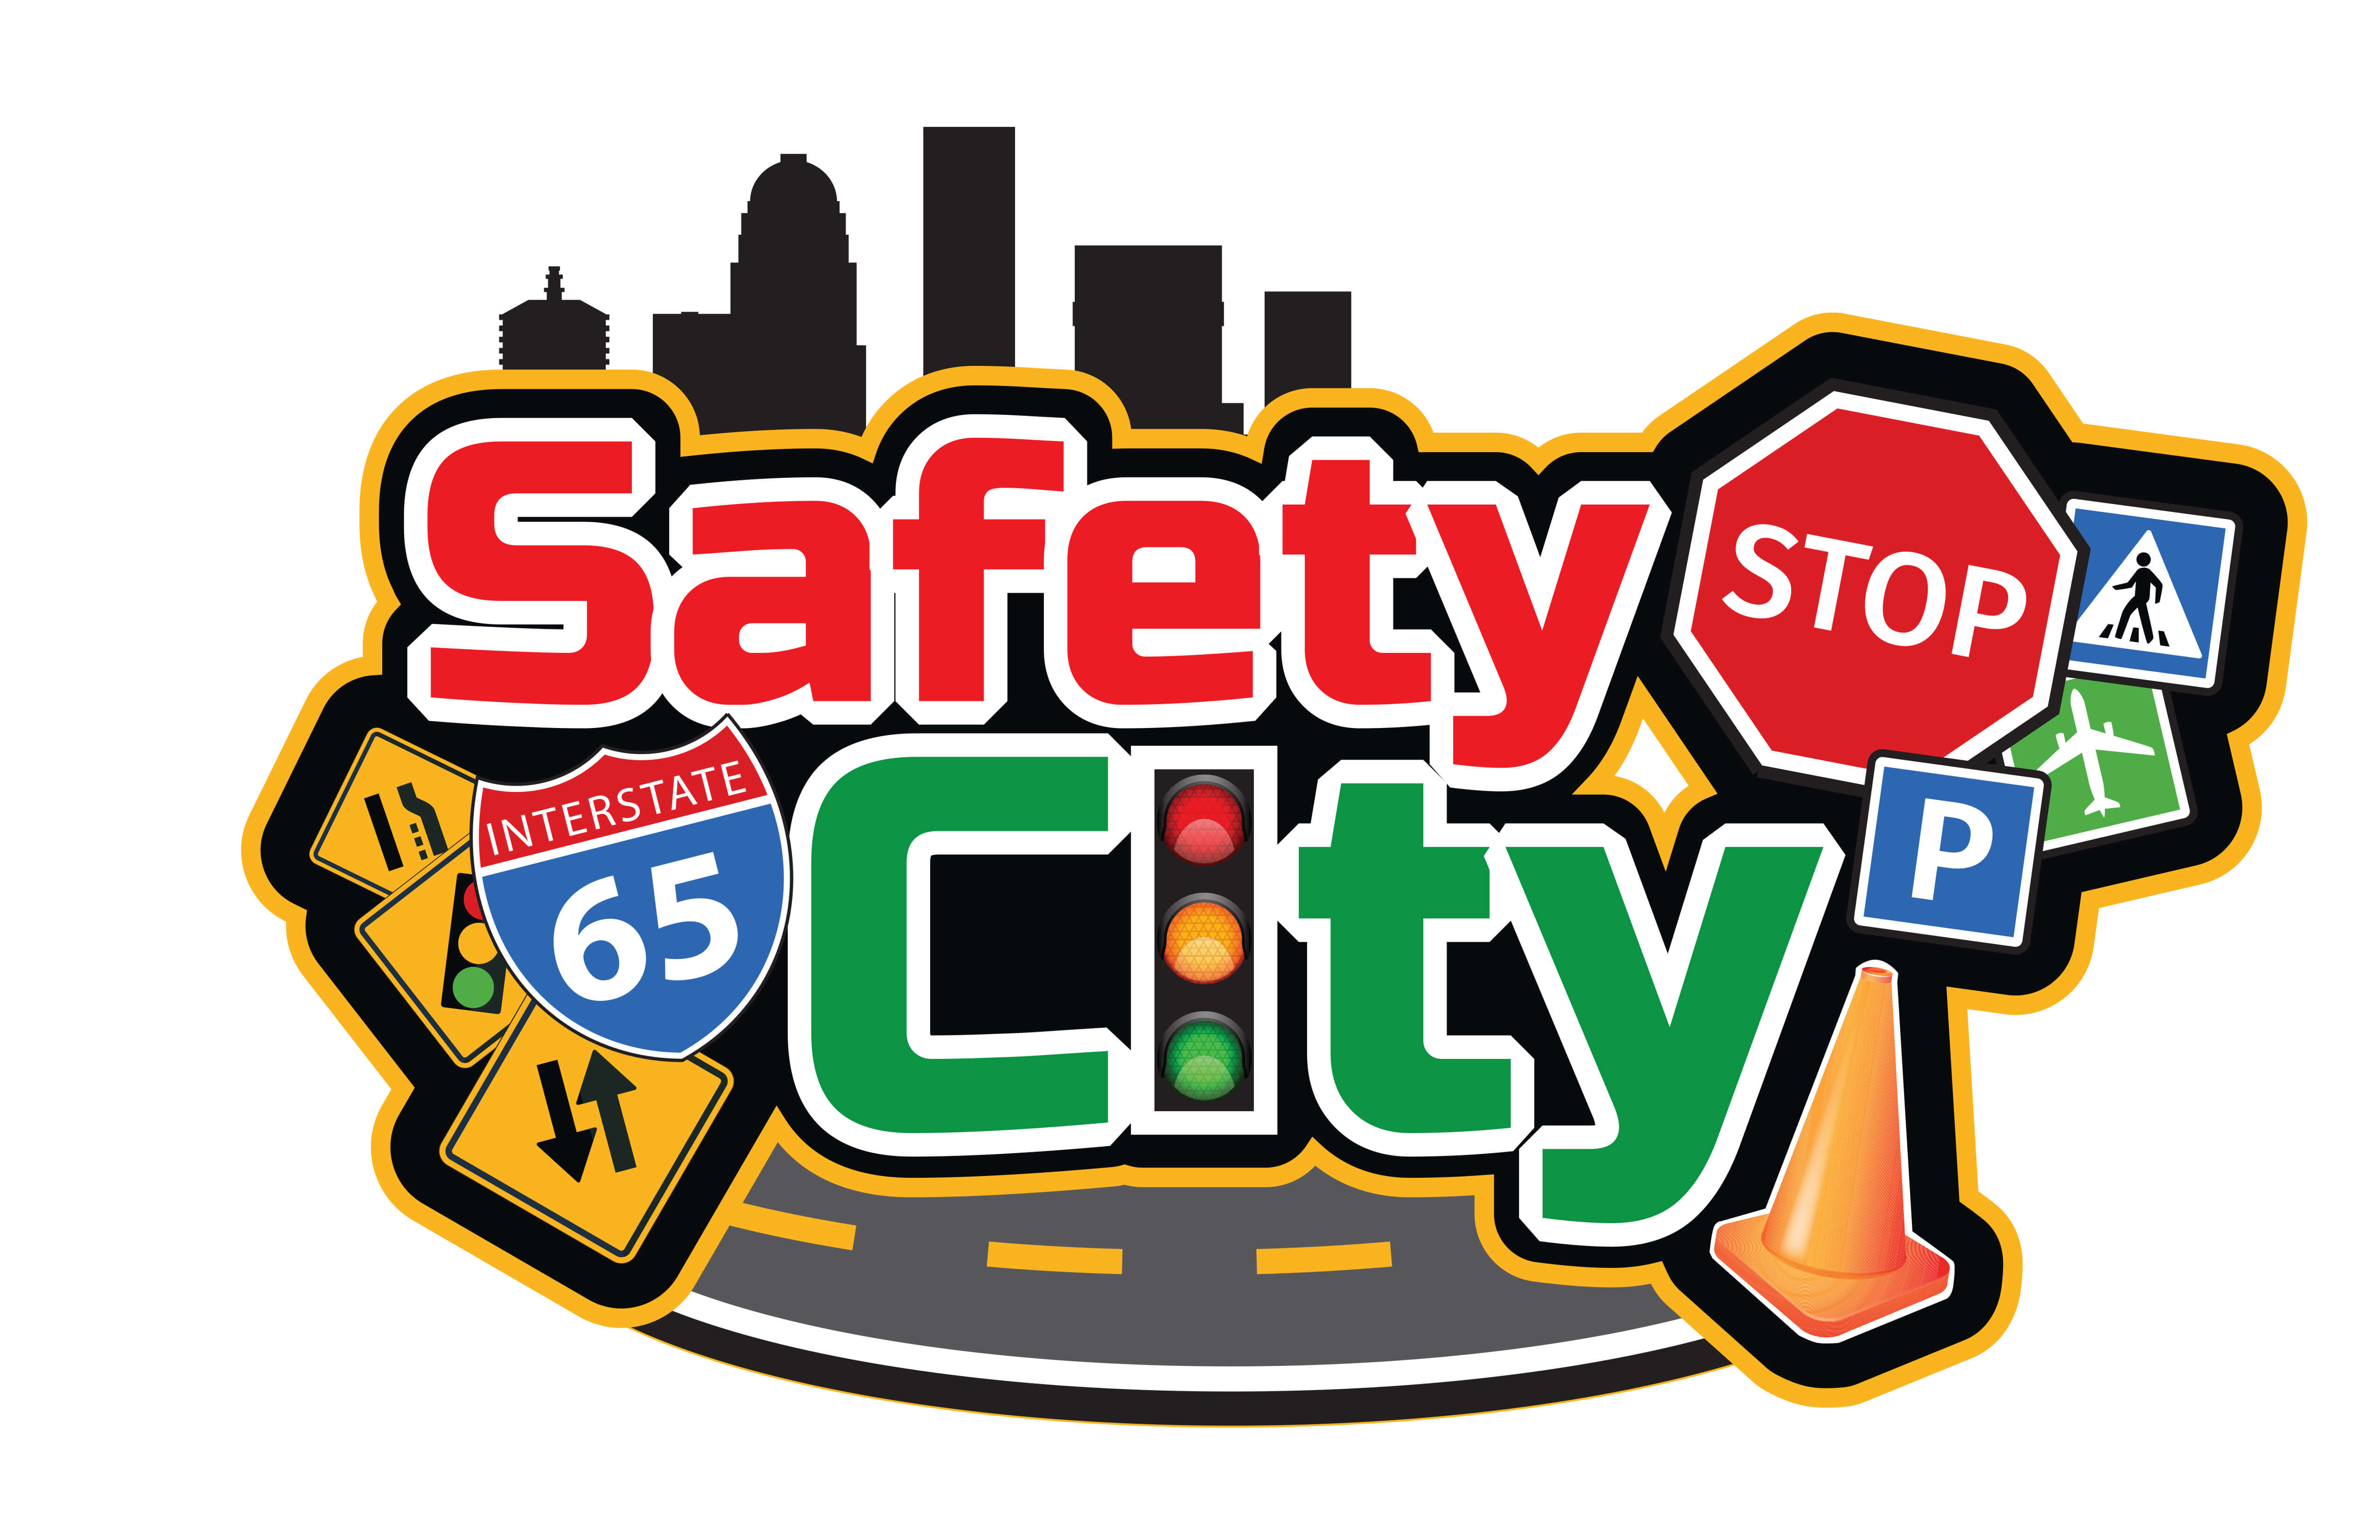 safe city Safe city is a community-based initiative that unites law enforcement, businesses , residents and city officials through a project intended to maximize safeness.